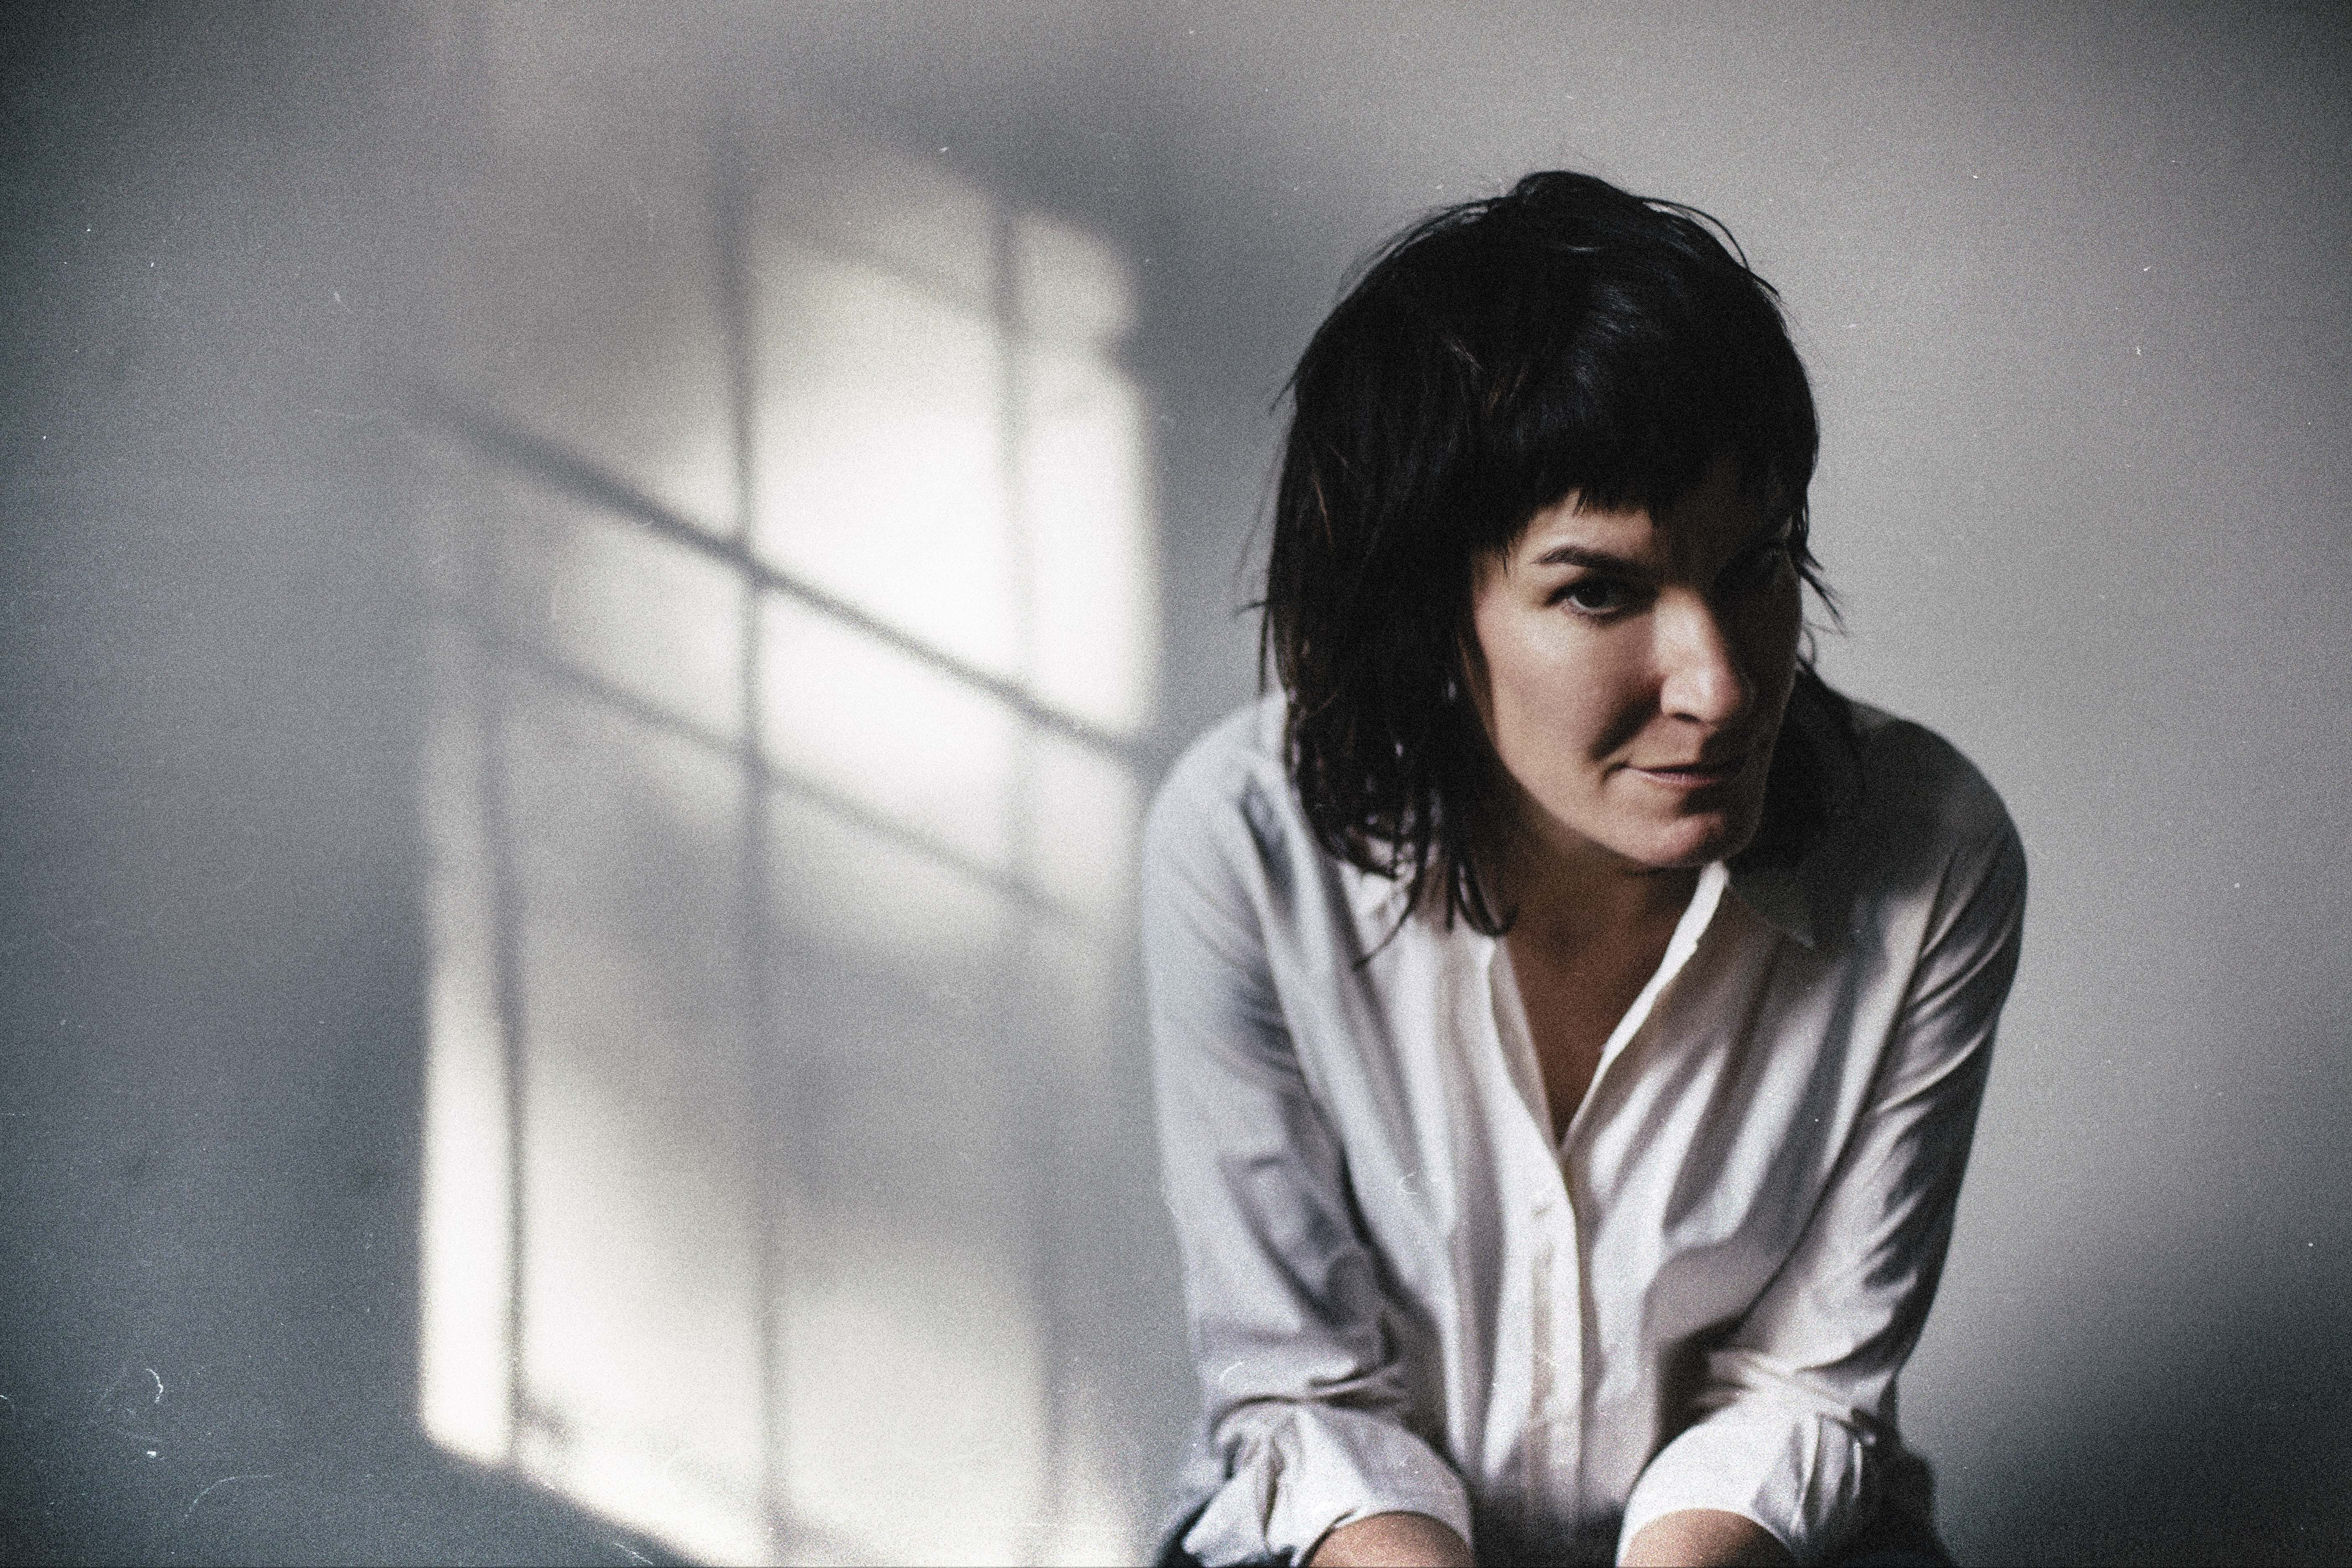 PODCAST EPISODE 014: Jen Cloher